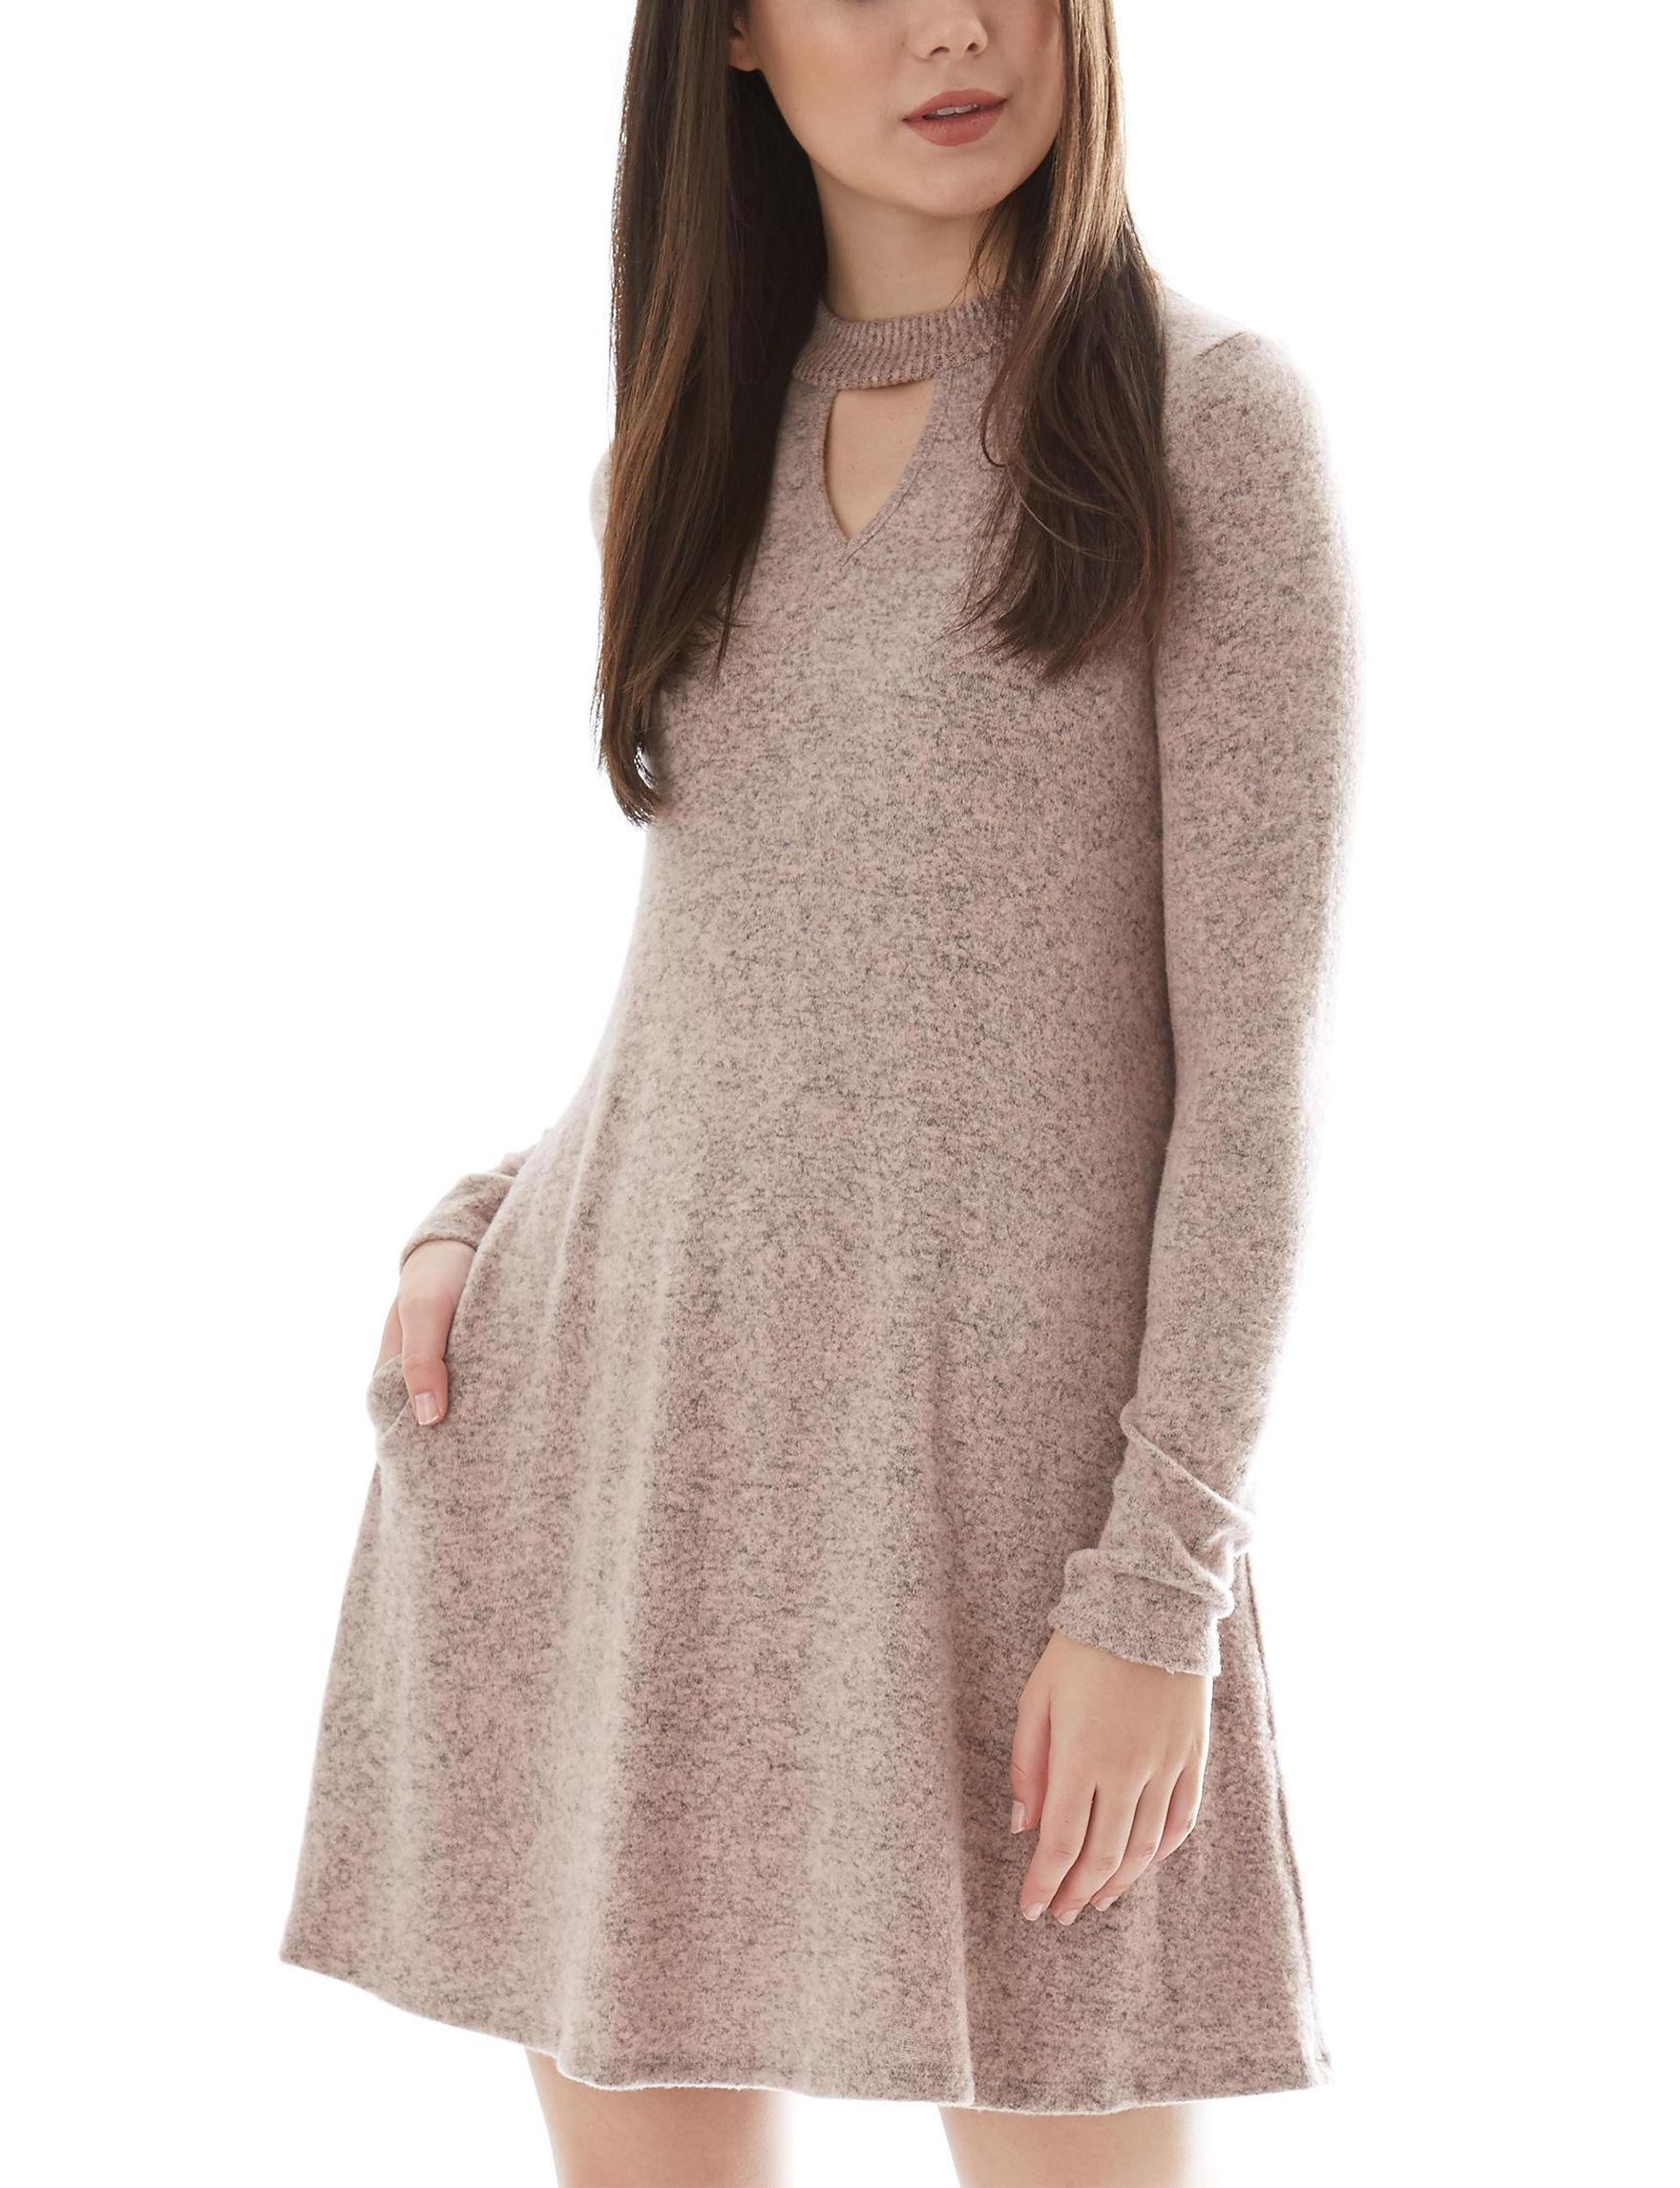 A. Byer Rose Everyday & Casual Sweater Dresses